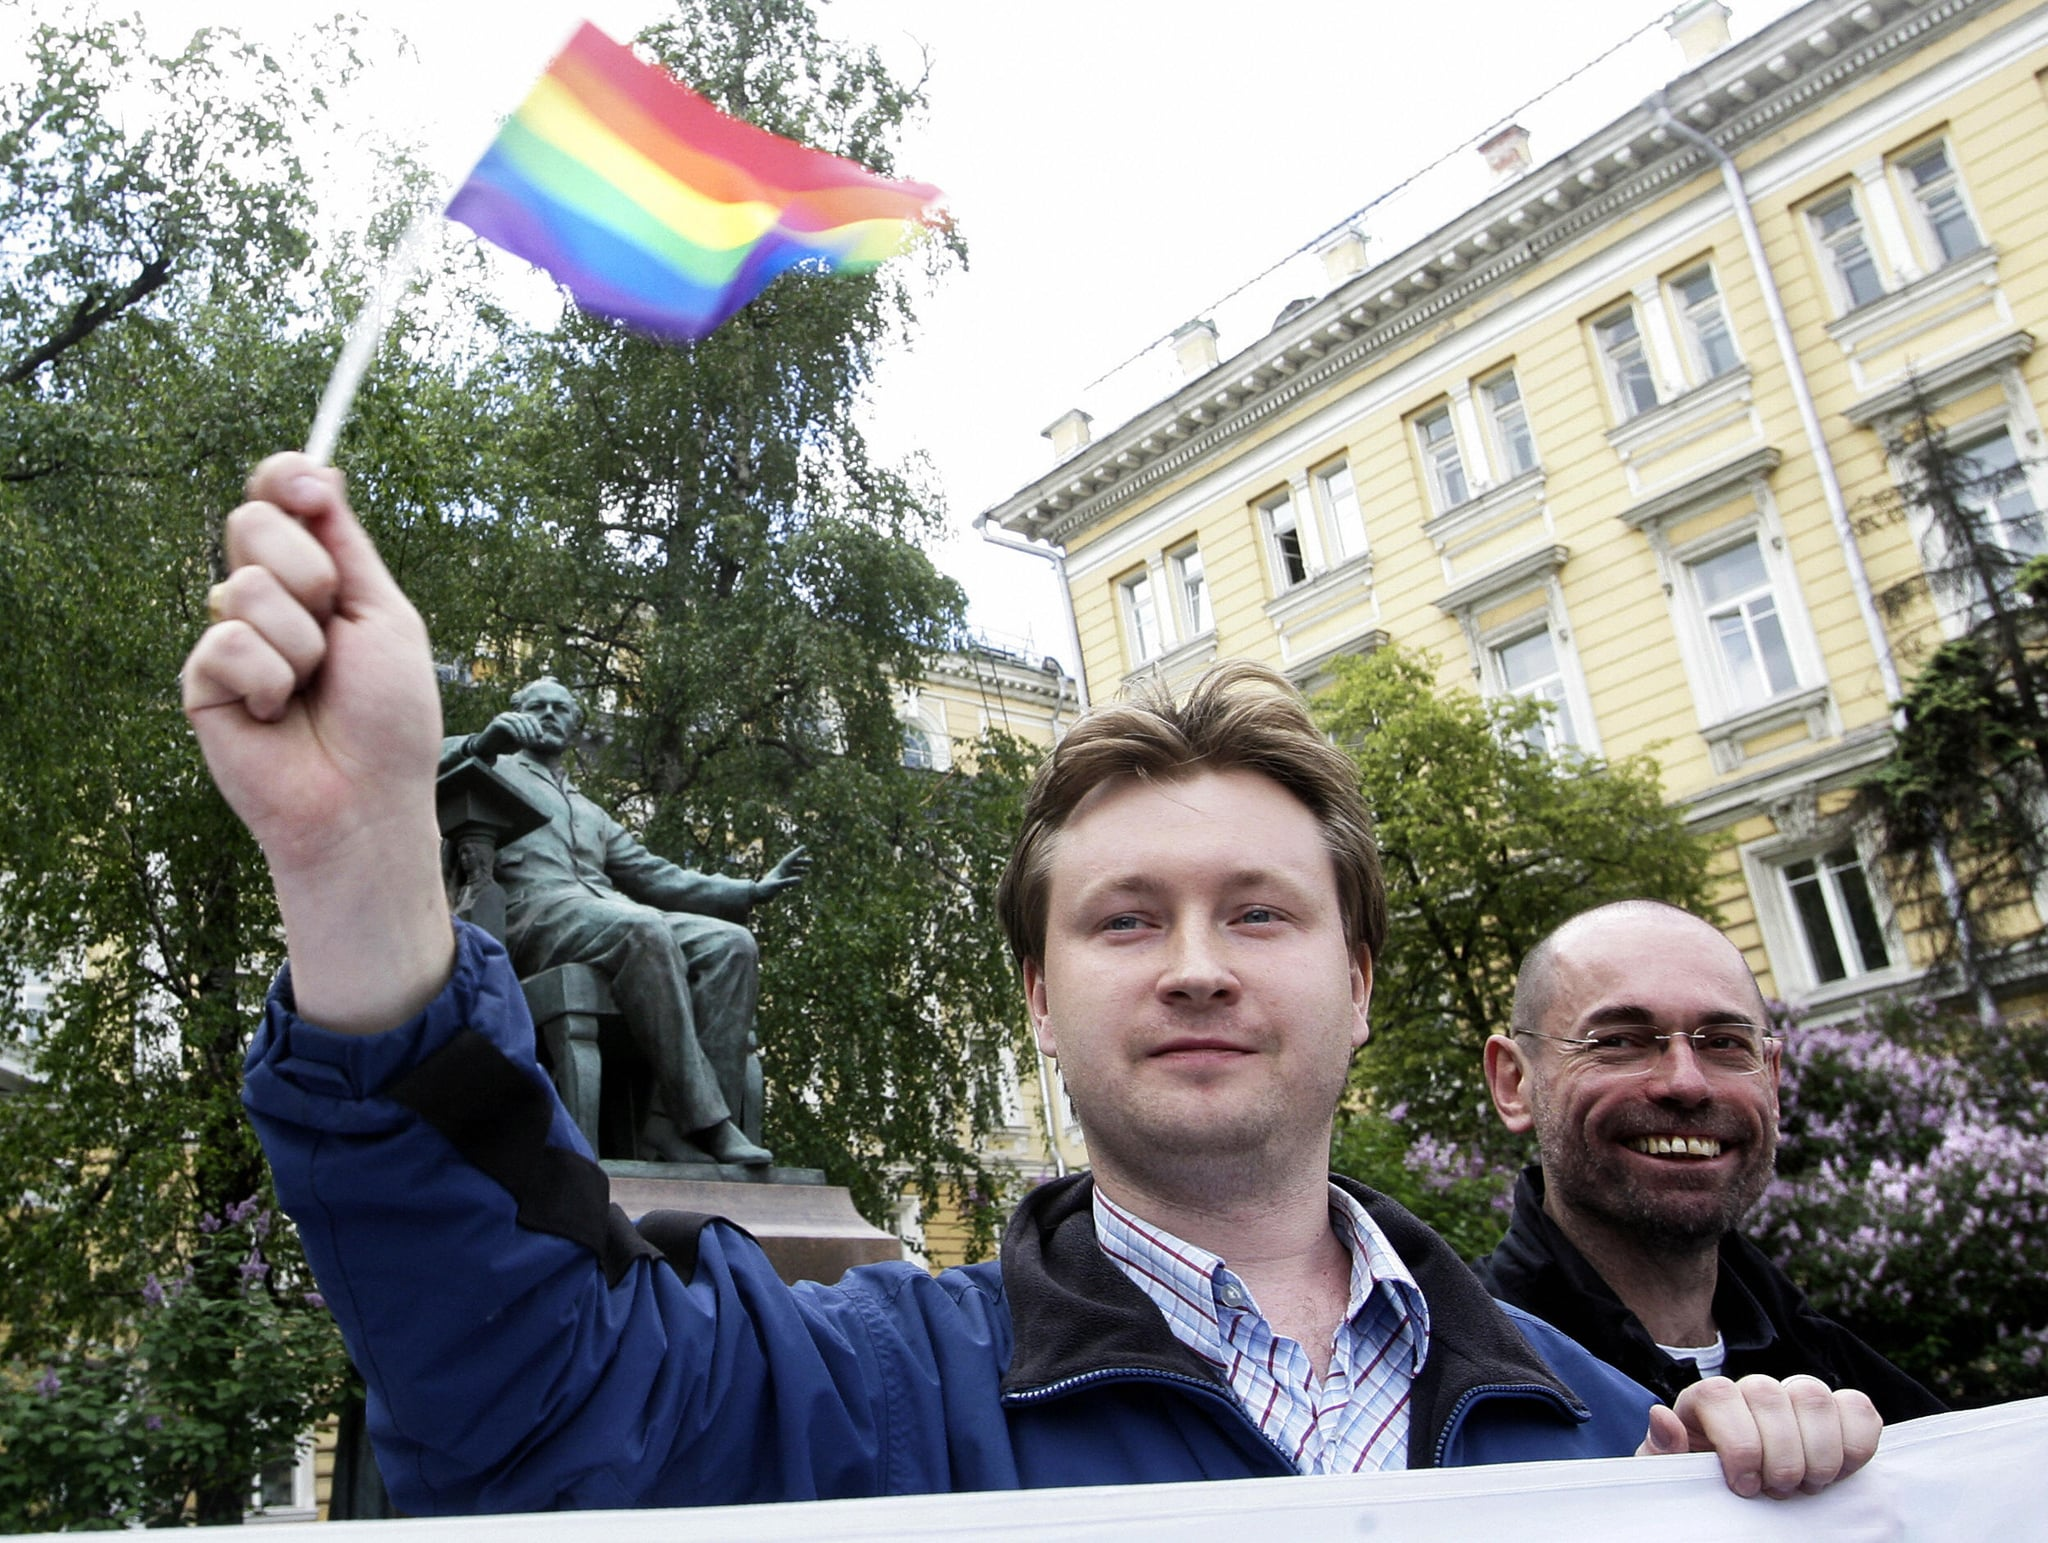 Russian gay community leader Nikolai Alexeyev waves a flag.